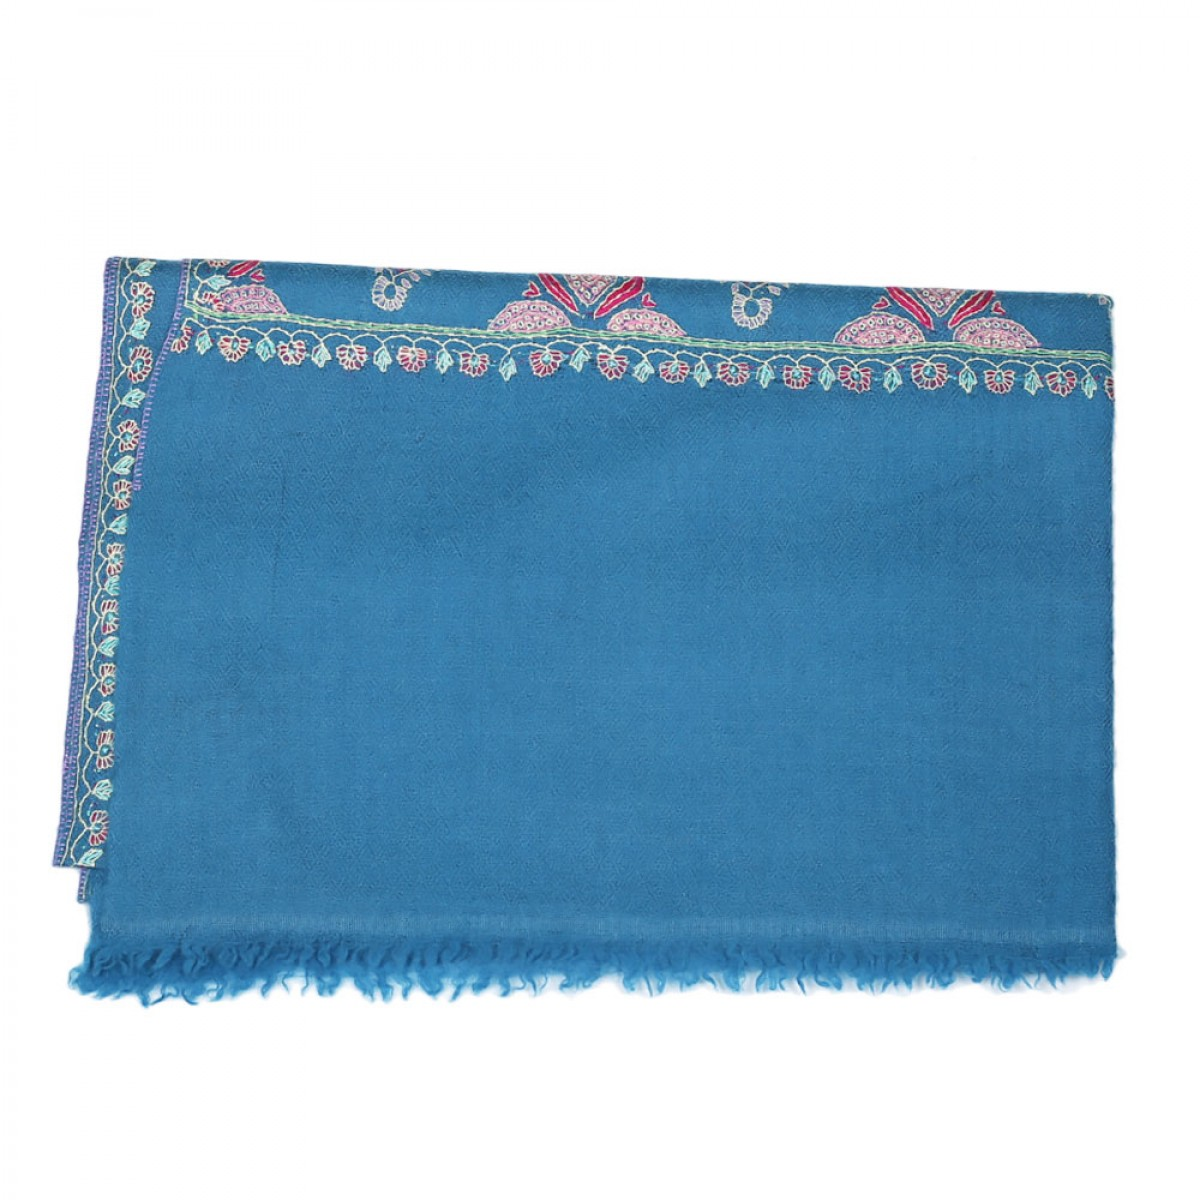 Embroidered Handloom Pashmina Stole - Steel Blue